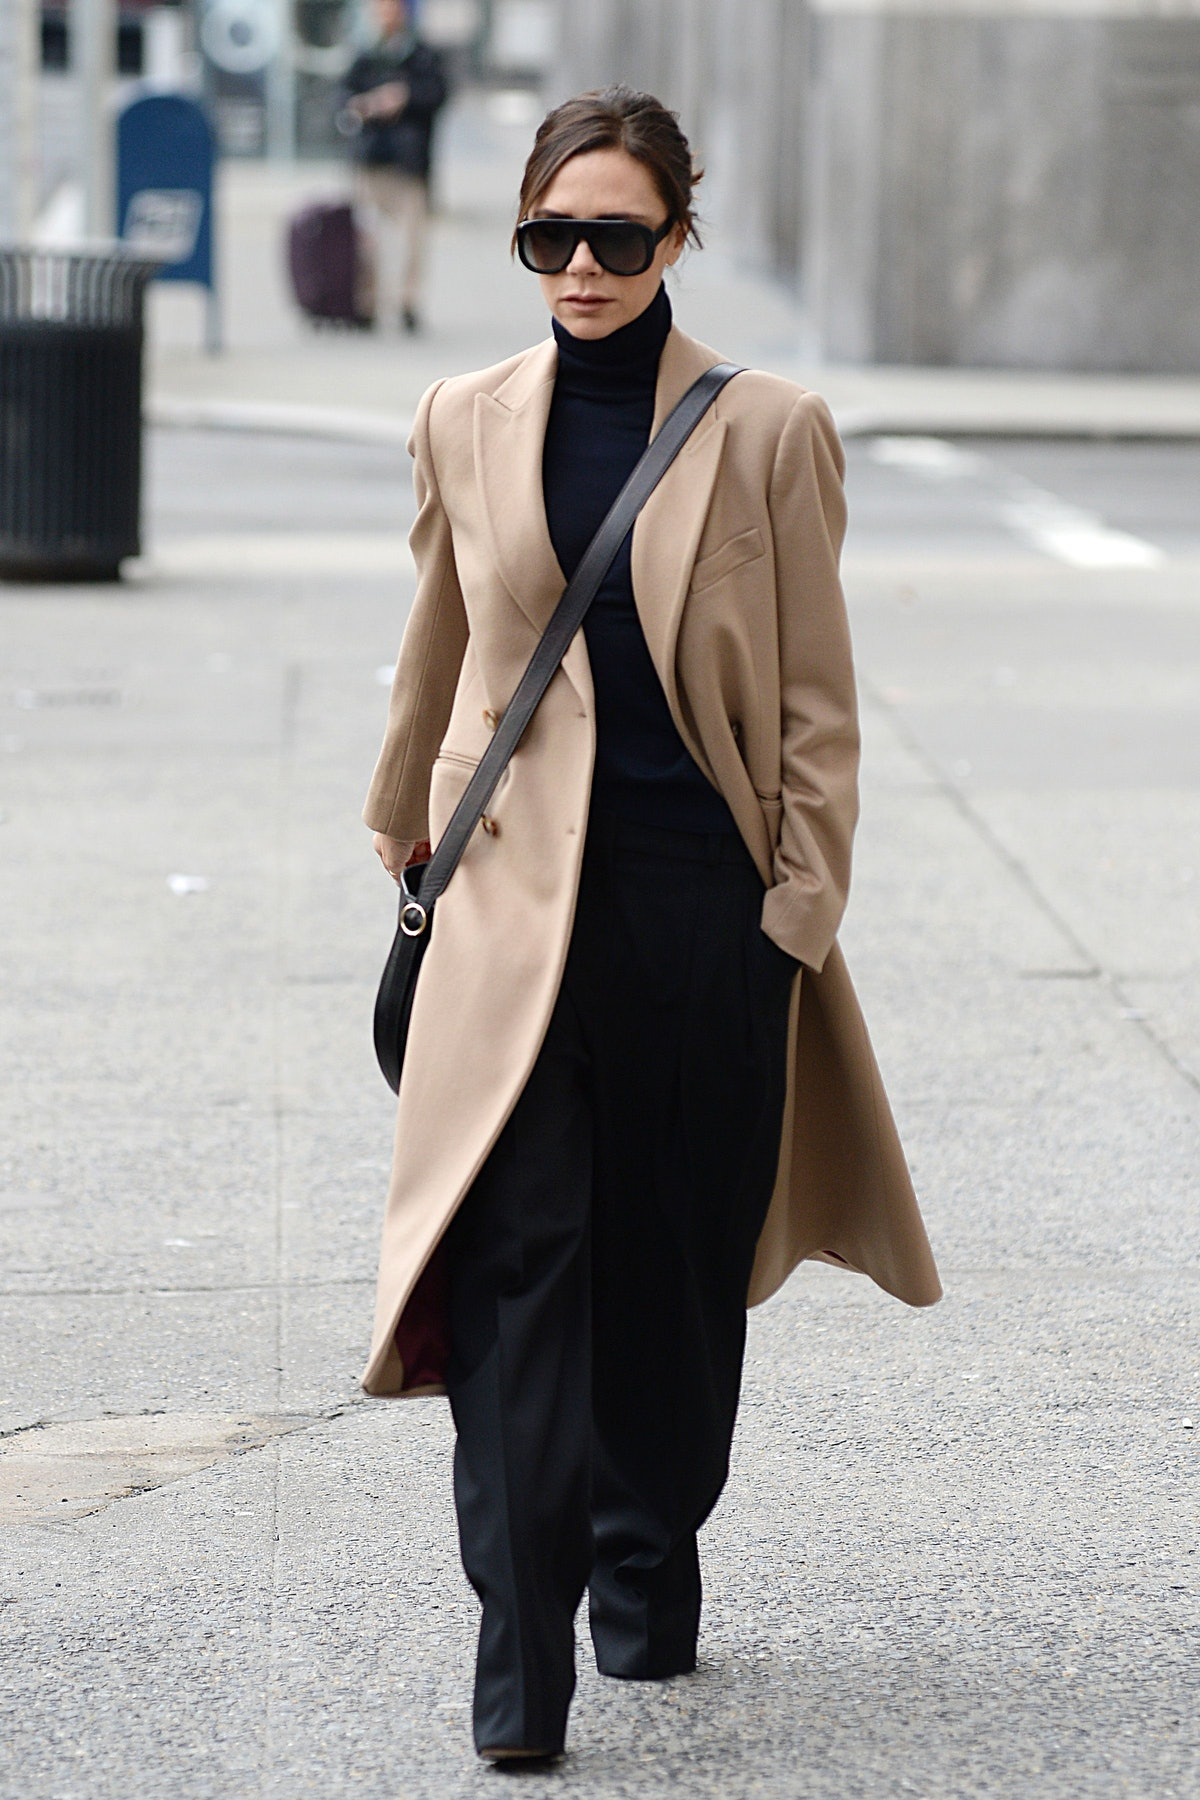 Victoria Beckham wearing a camel coat, black sunglasses, a turtleneck, and trousers.